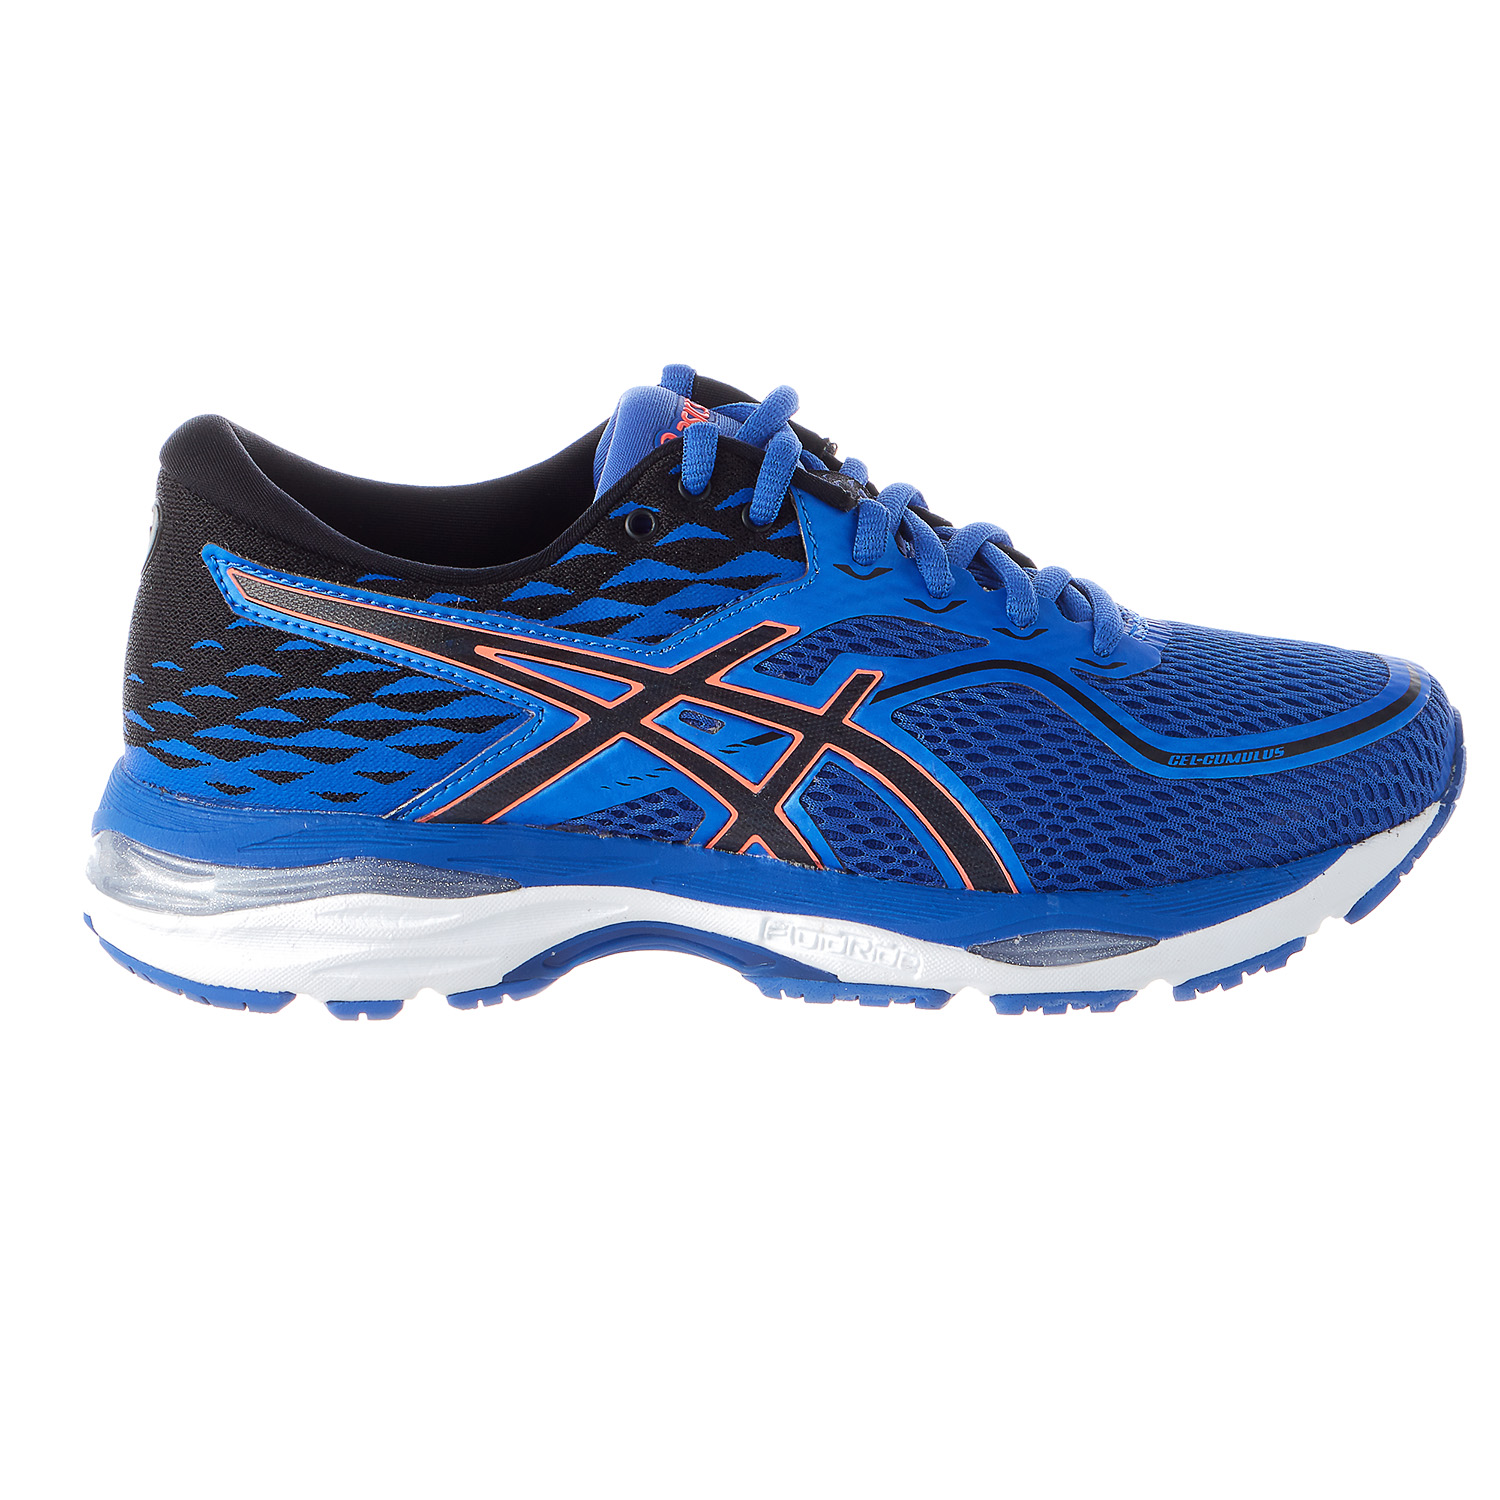 Asics Gel-Cumulus 19 Running-Shoes Womens by Asics